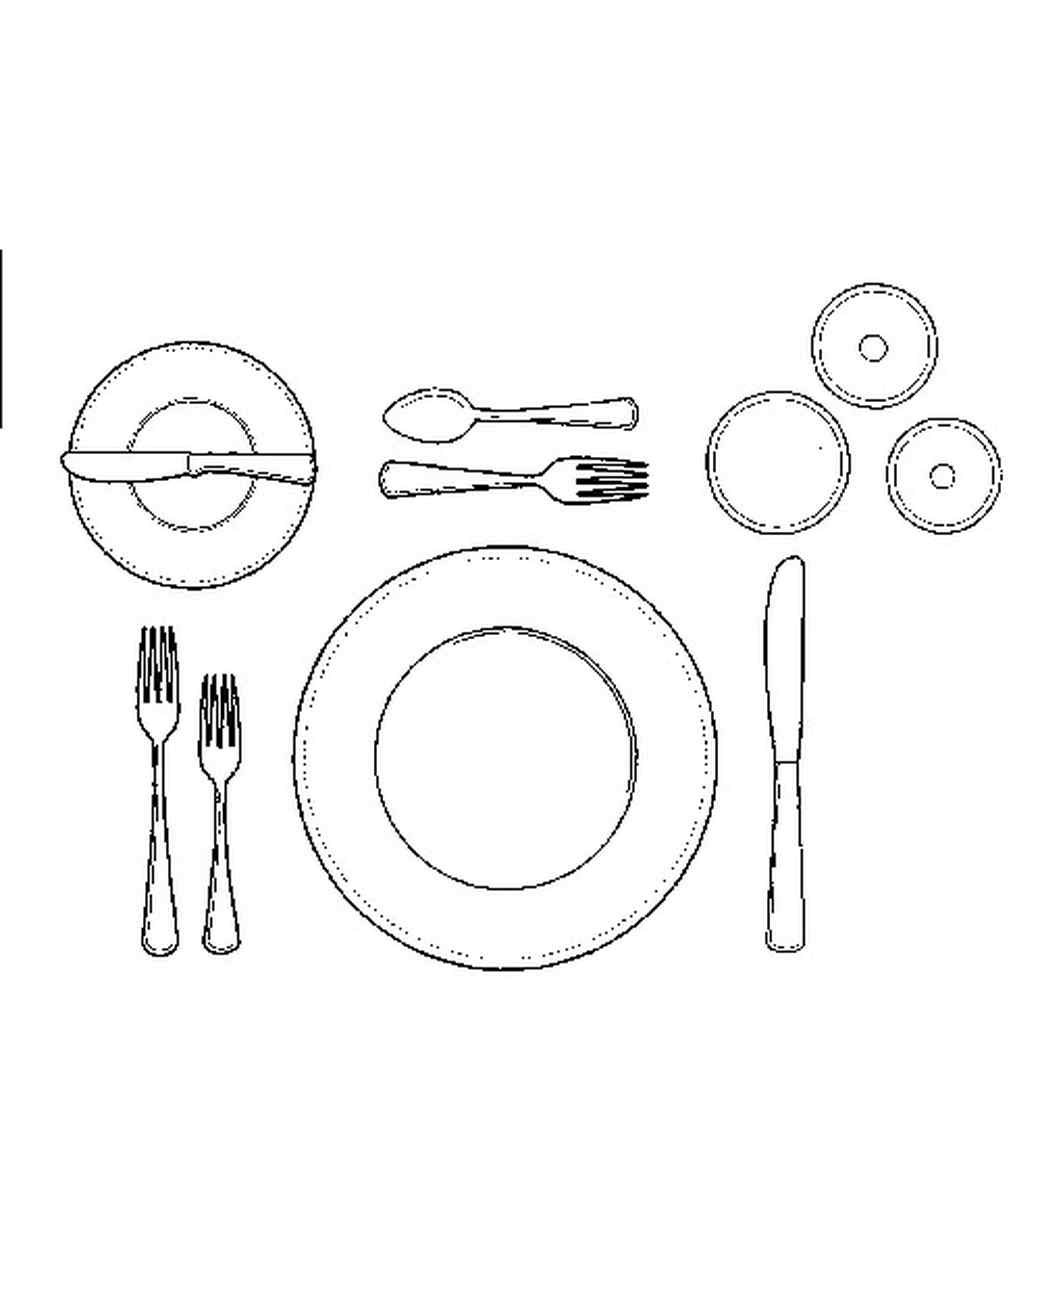 Afternoon Tea Table Setting Diagram